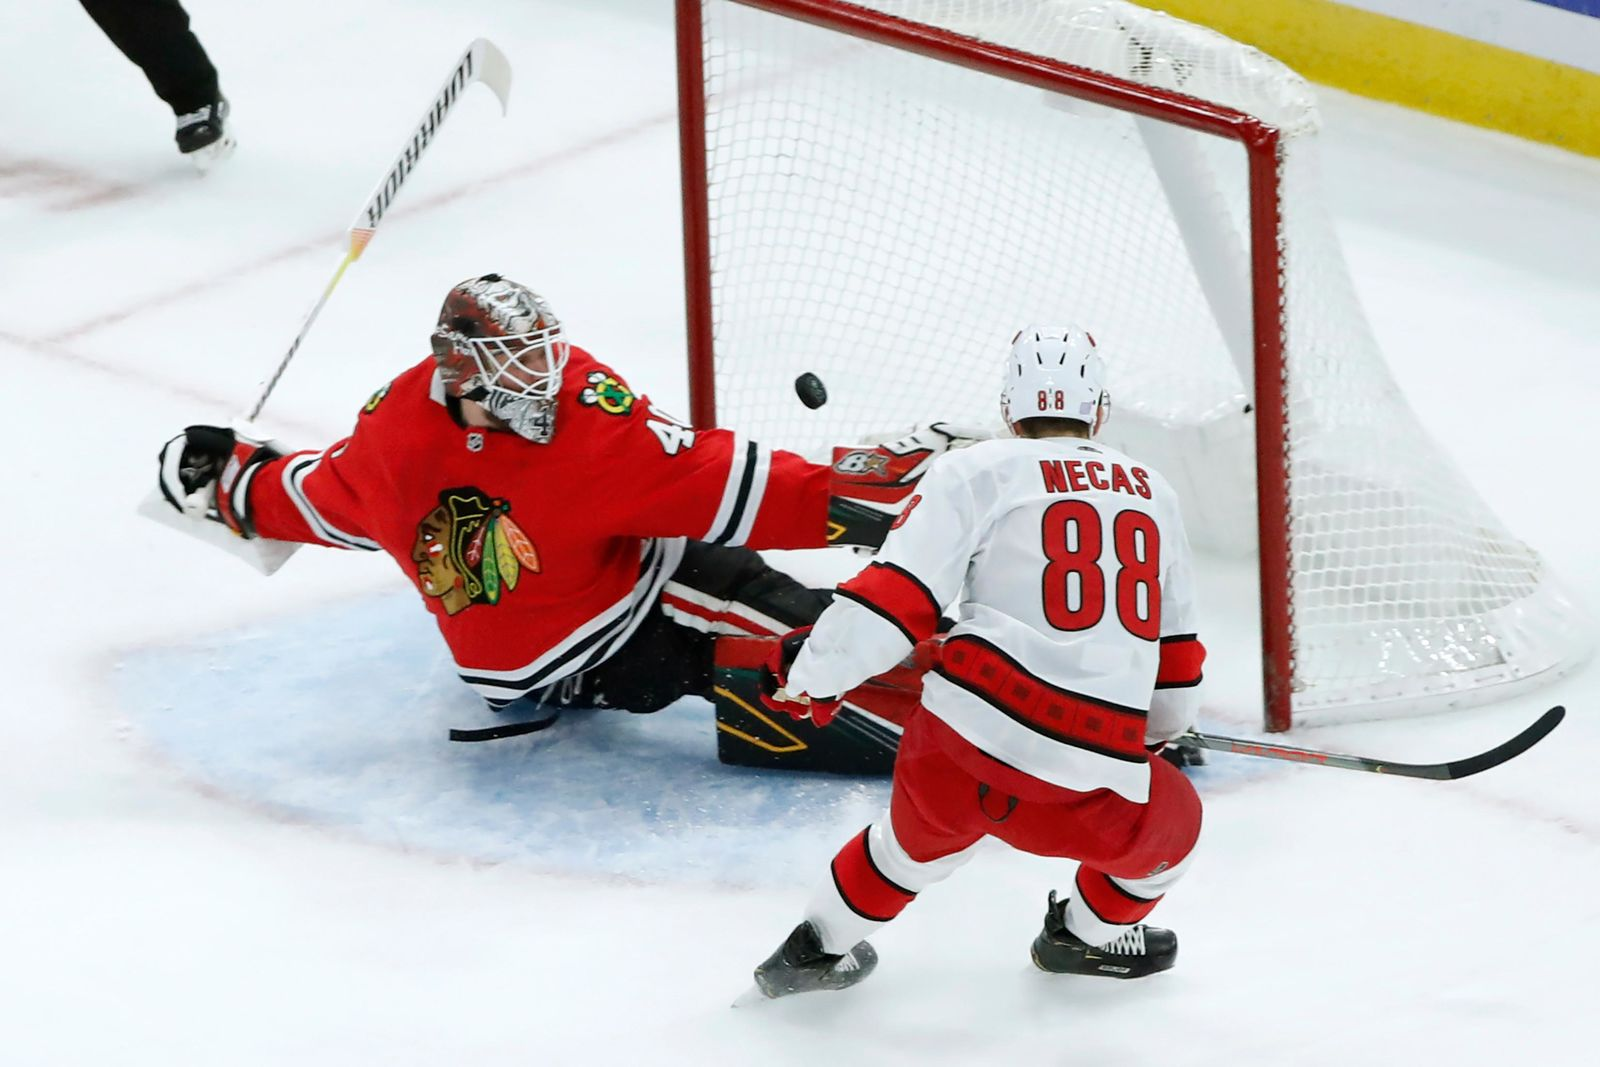 Carolina Hurricanes center Martin Necas (88) scores past Chicago Blackhawks goaltender Robin Lehner during the first period of an NHL hockey game Tuesday, Nov. 19, 2019, in Chicago. (AP Photo/Charles Rex Arbogast)